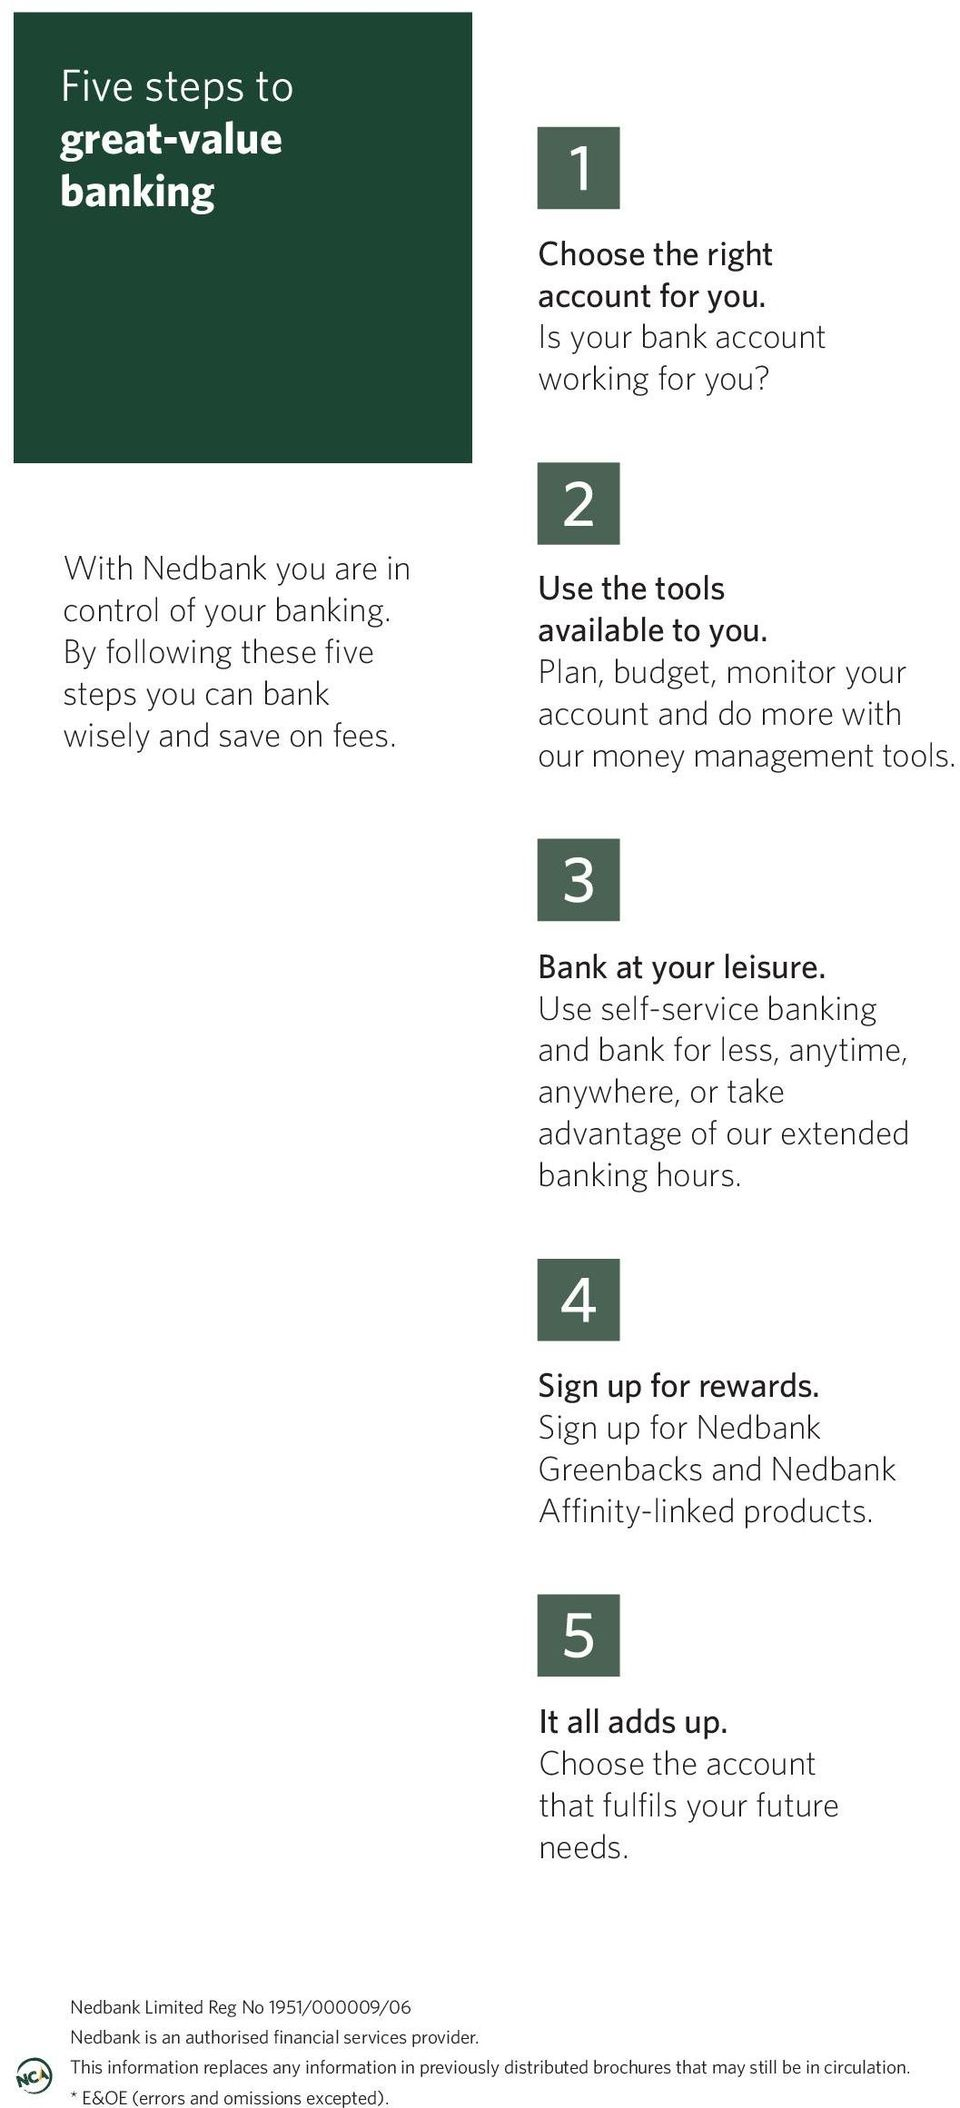 Bank at your leisure. Use self-service banking and bank for less, anytime, anywhere, or take advantage of our extended banking hours. Sign up for rewards.